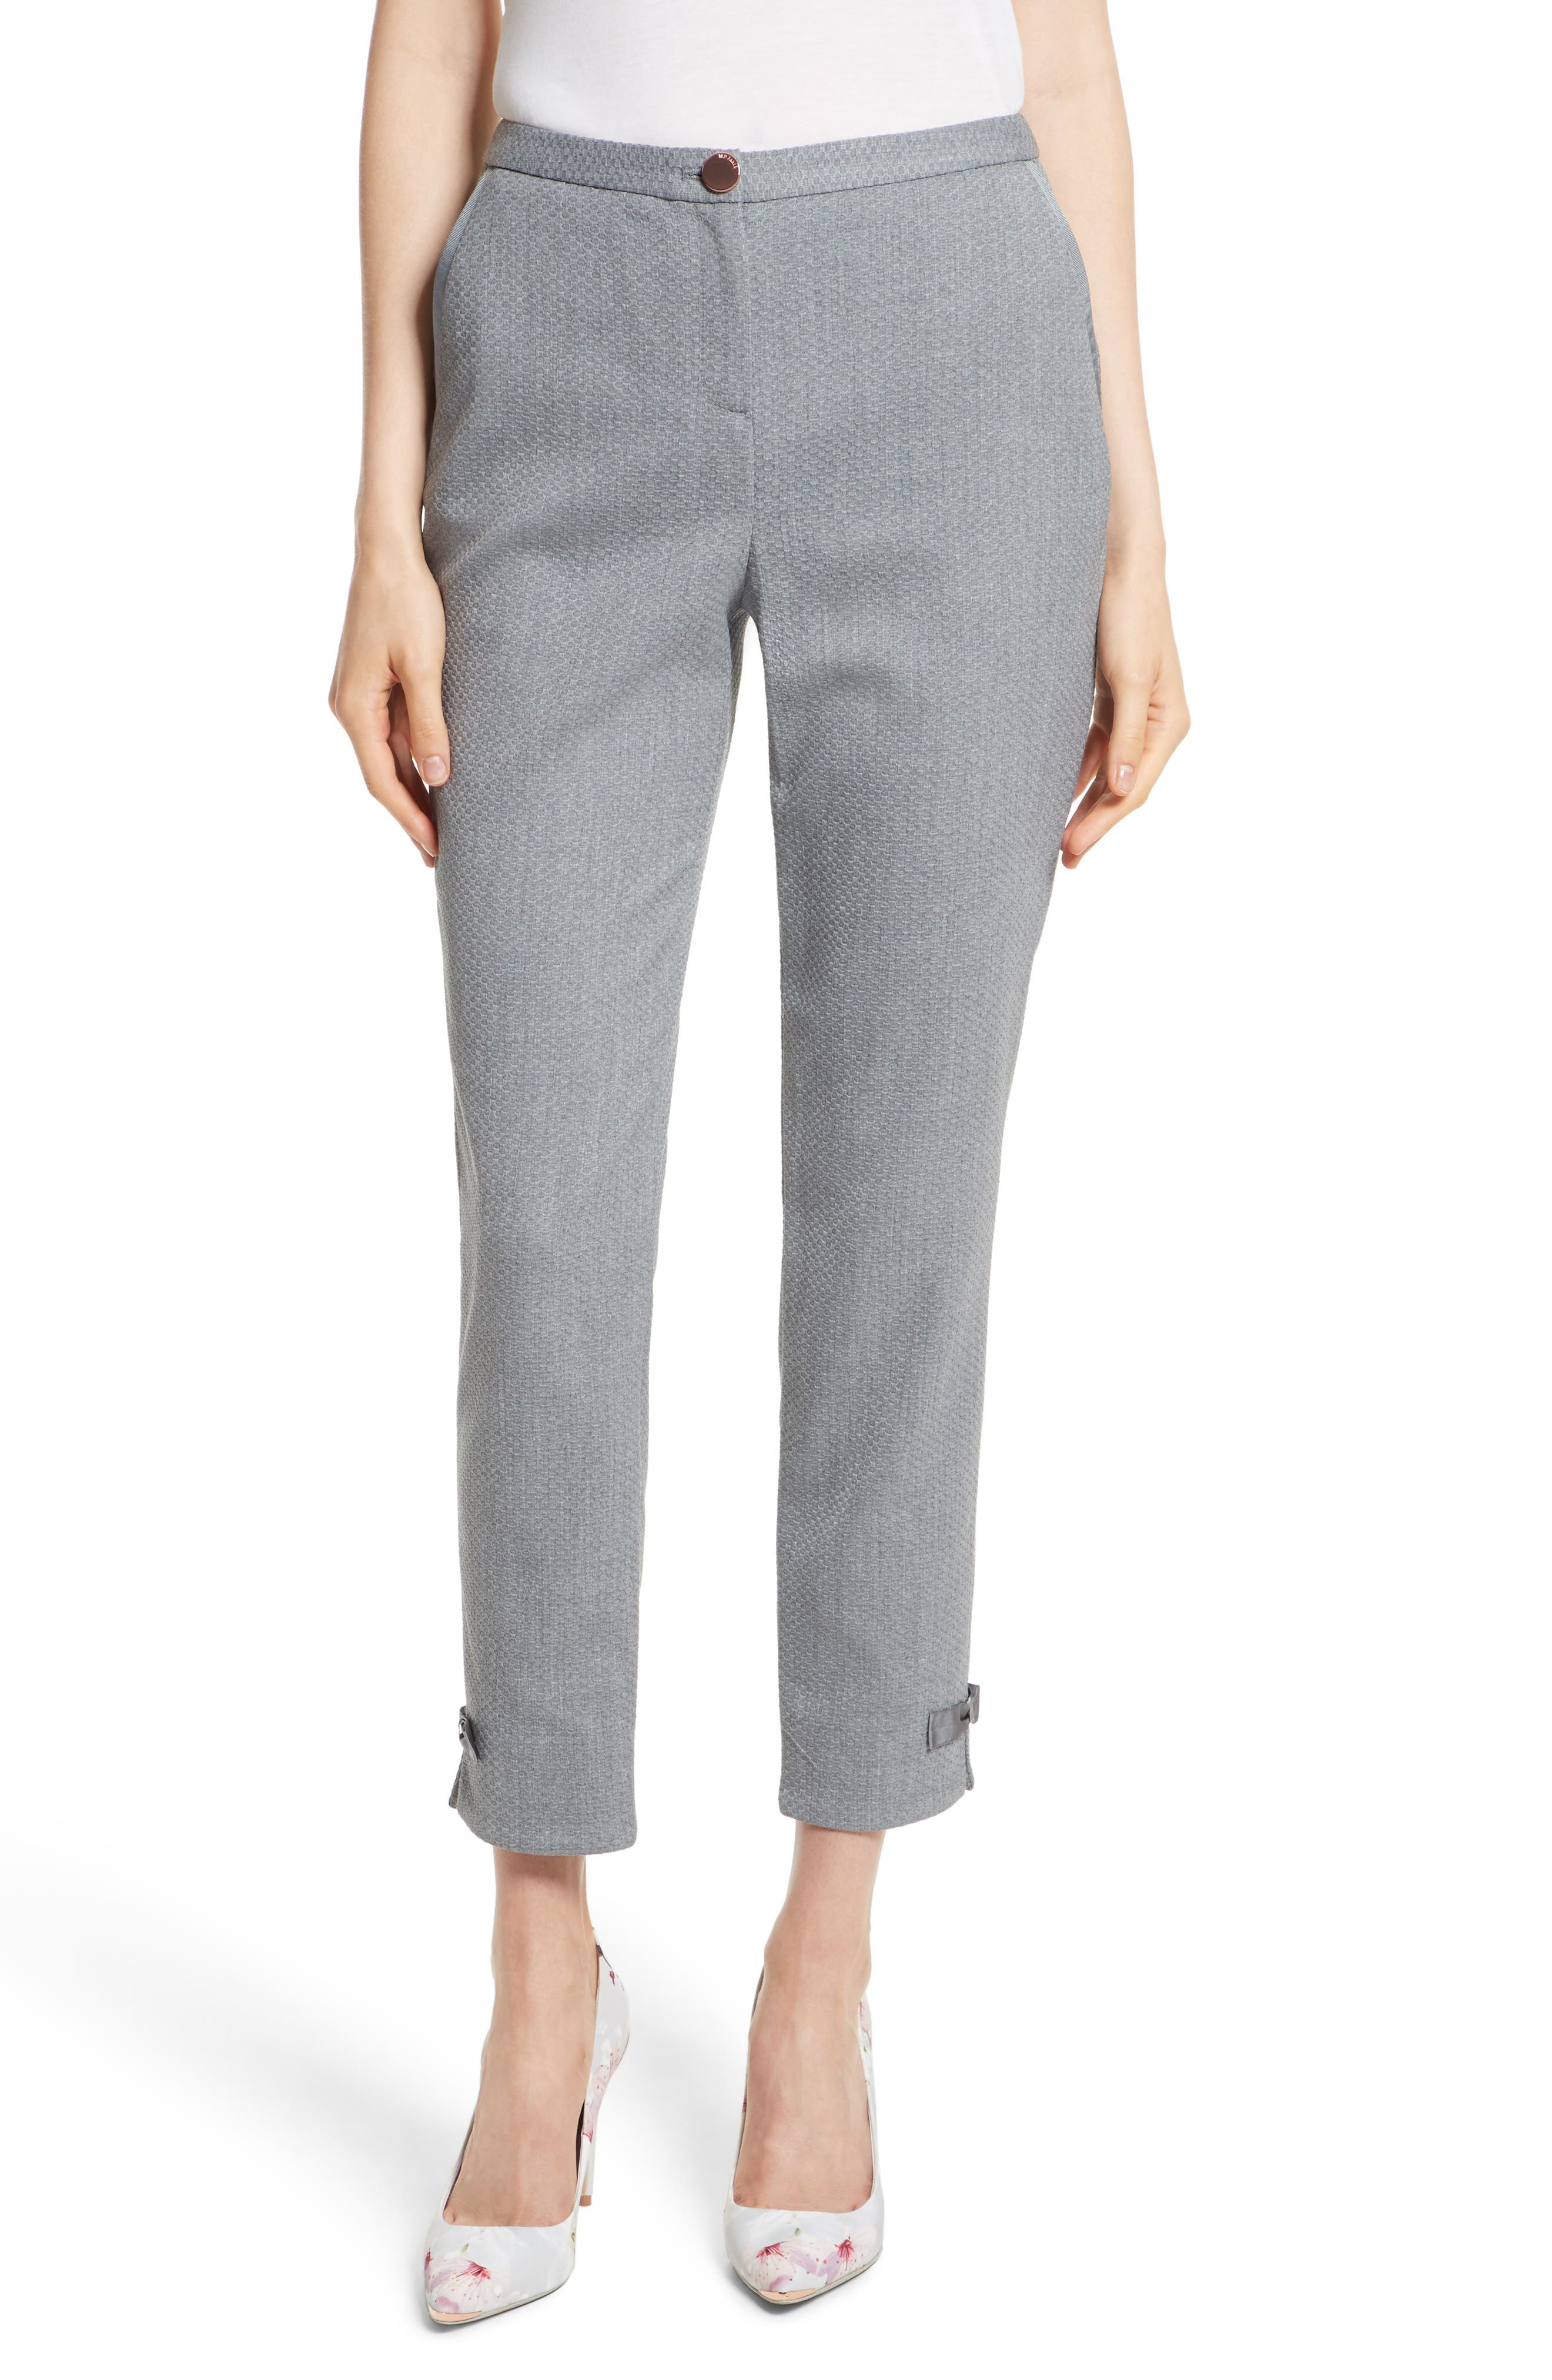 Nadaet Bow Detail Textured Ankle Trousers,                         Main,                         color, 021